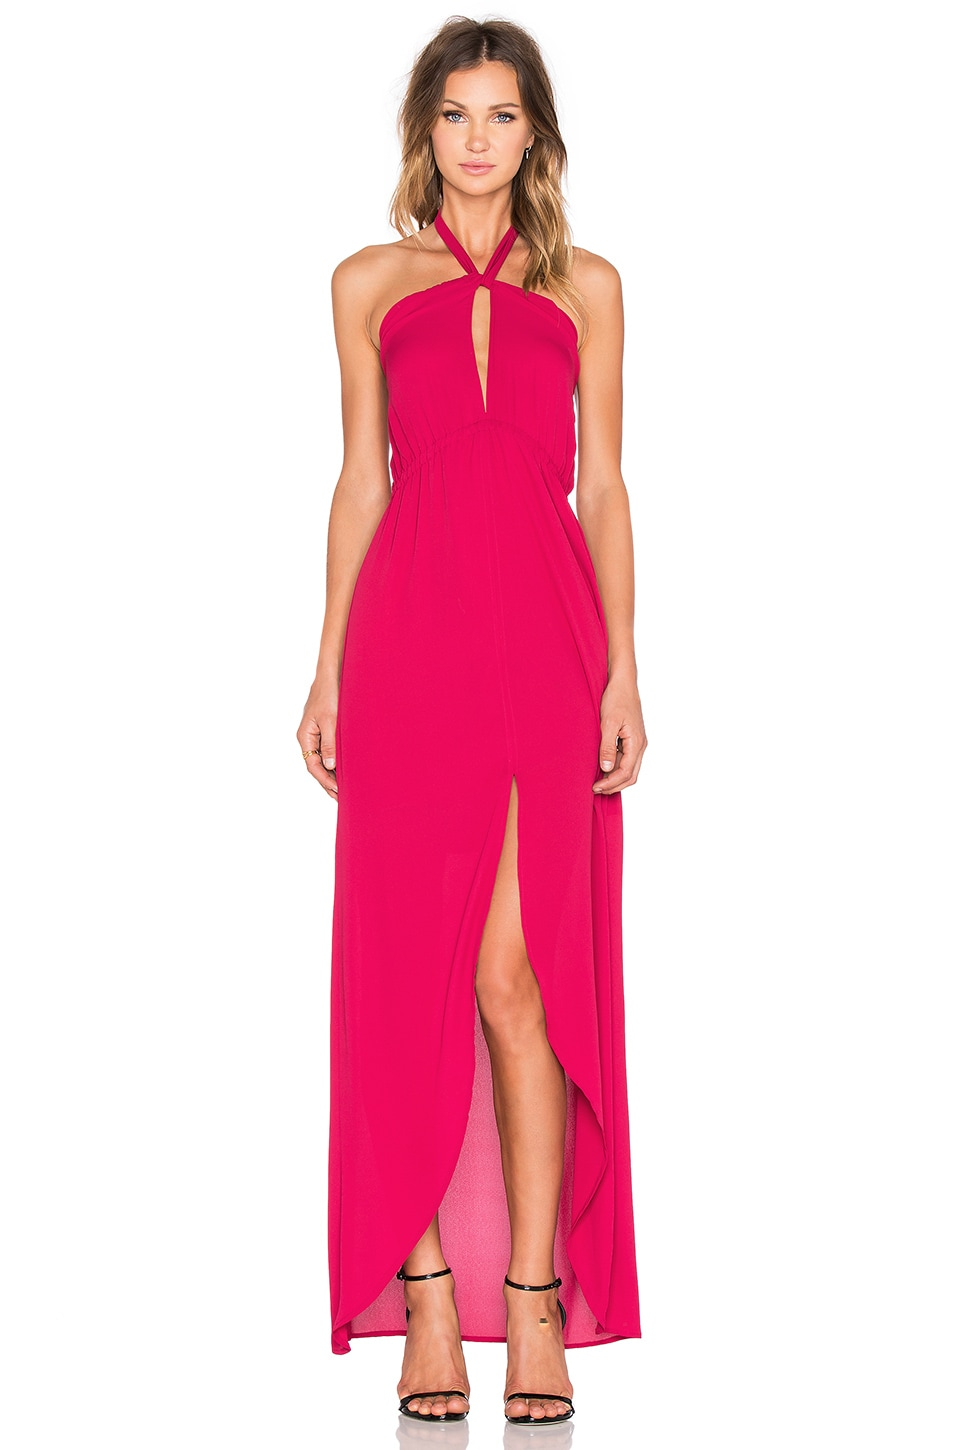 Helena Quinn Mariella Maxi Dress in Red